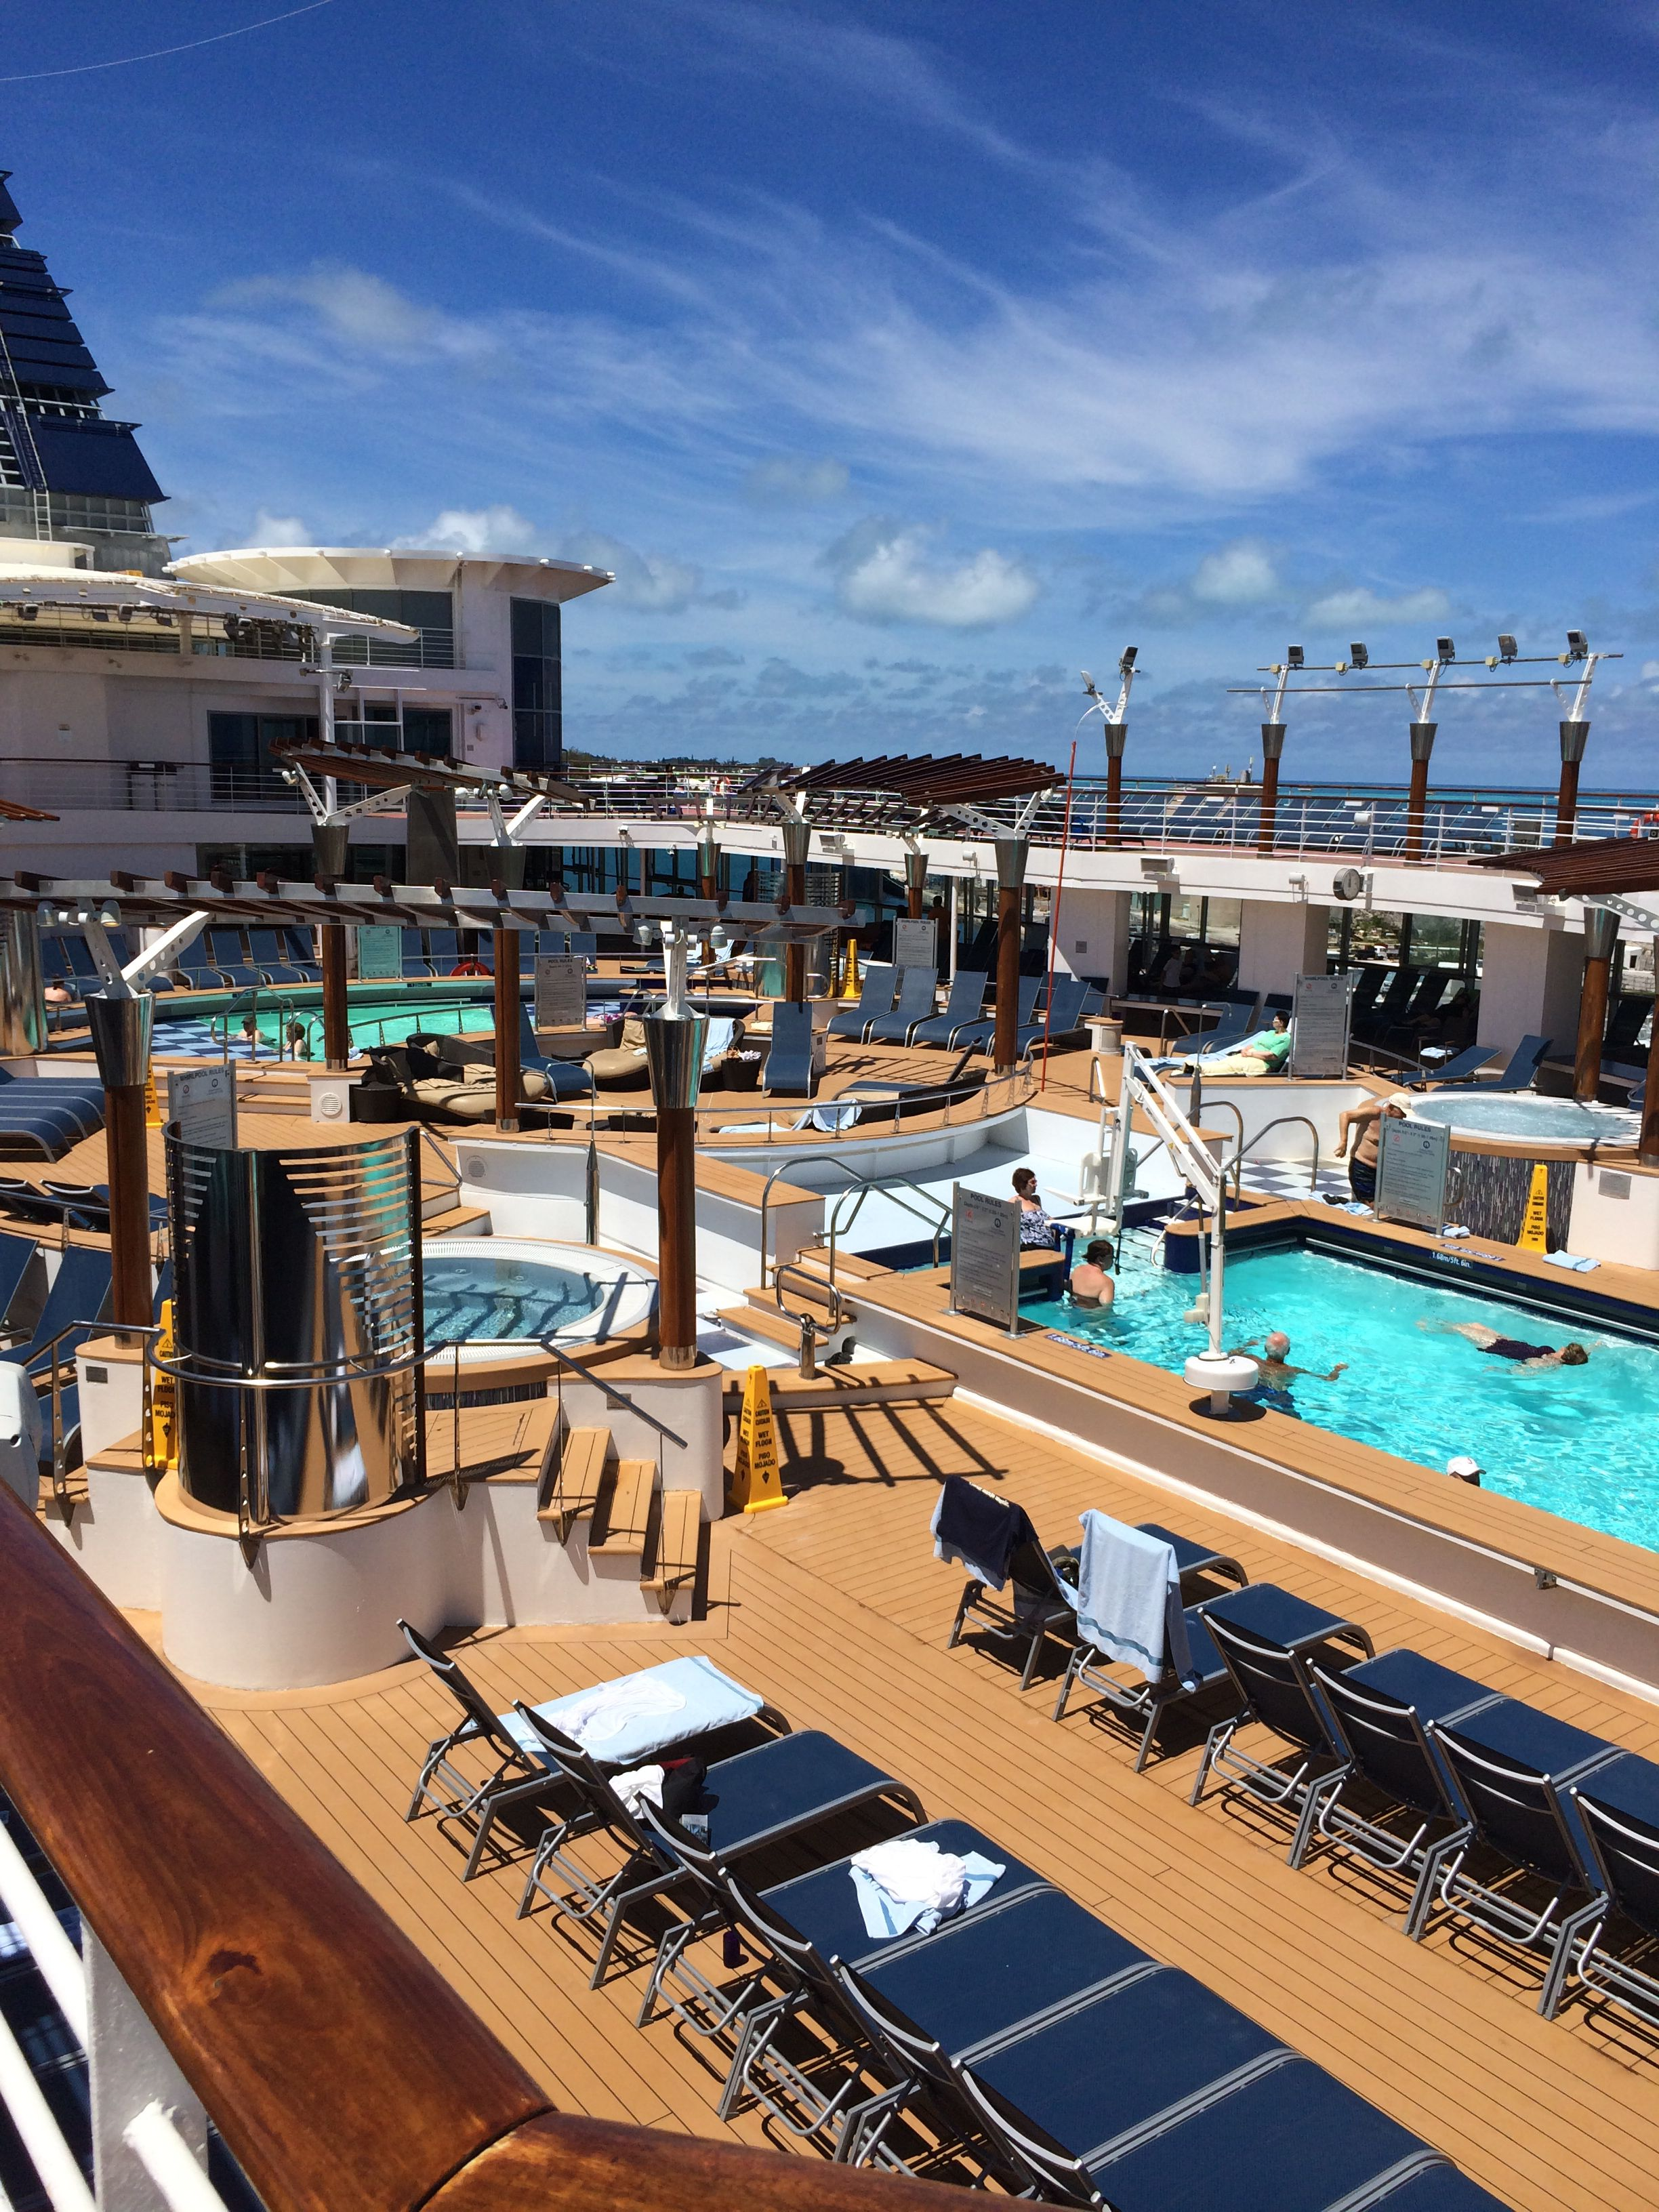 Pool Deck Aboard Celebrity Summit